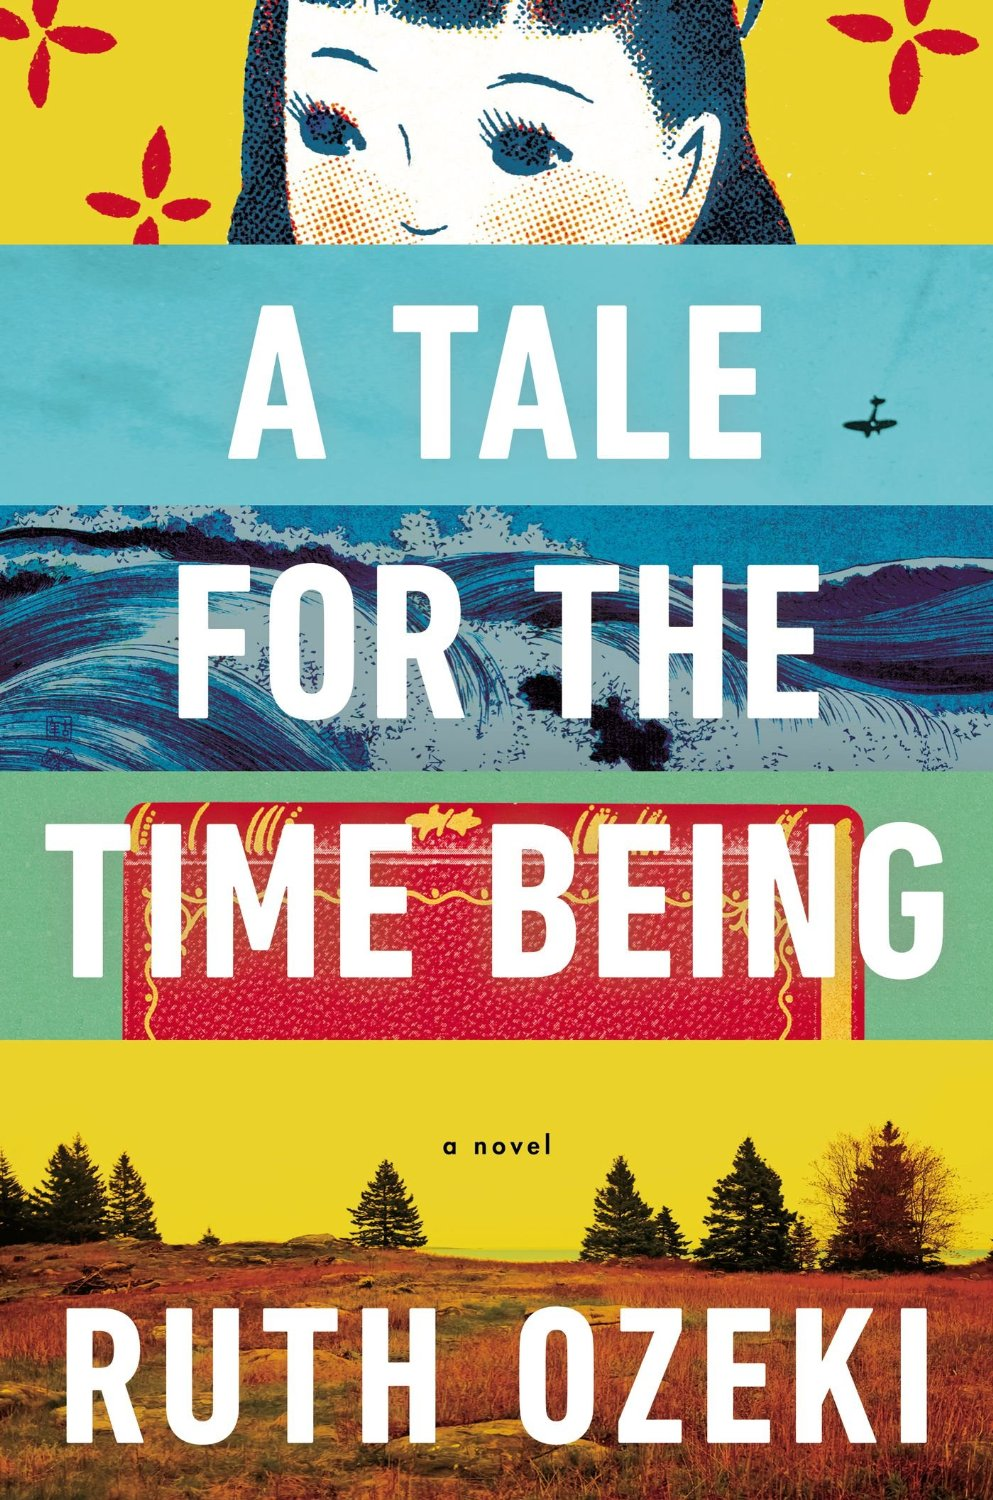 Lindsay Book Review | A Tale for the Time Being: A Gentle Clash of Perspectives